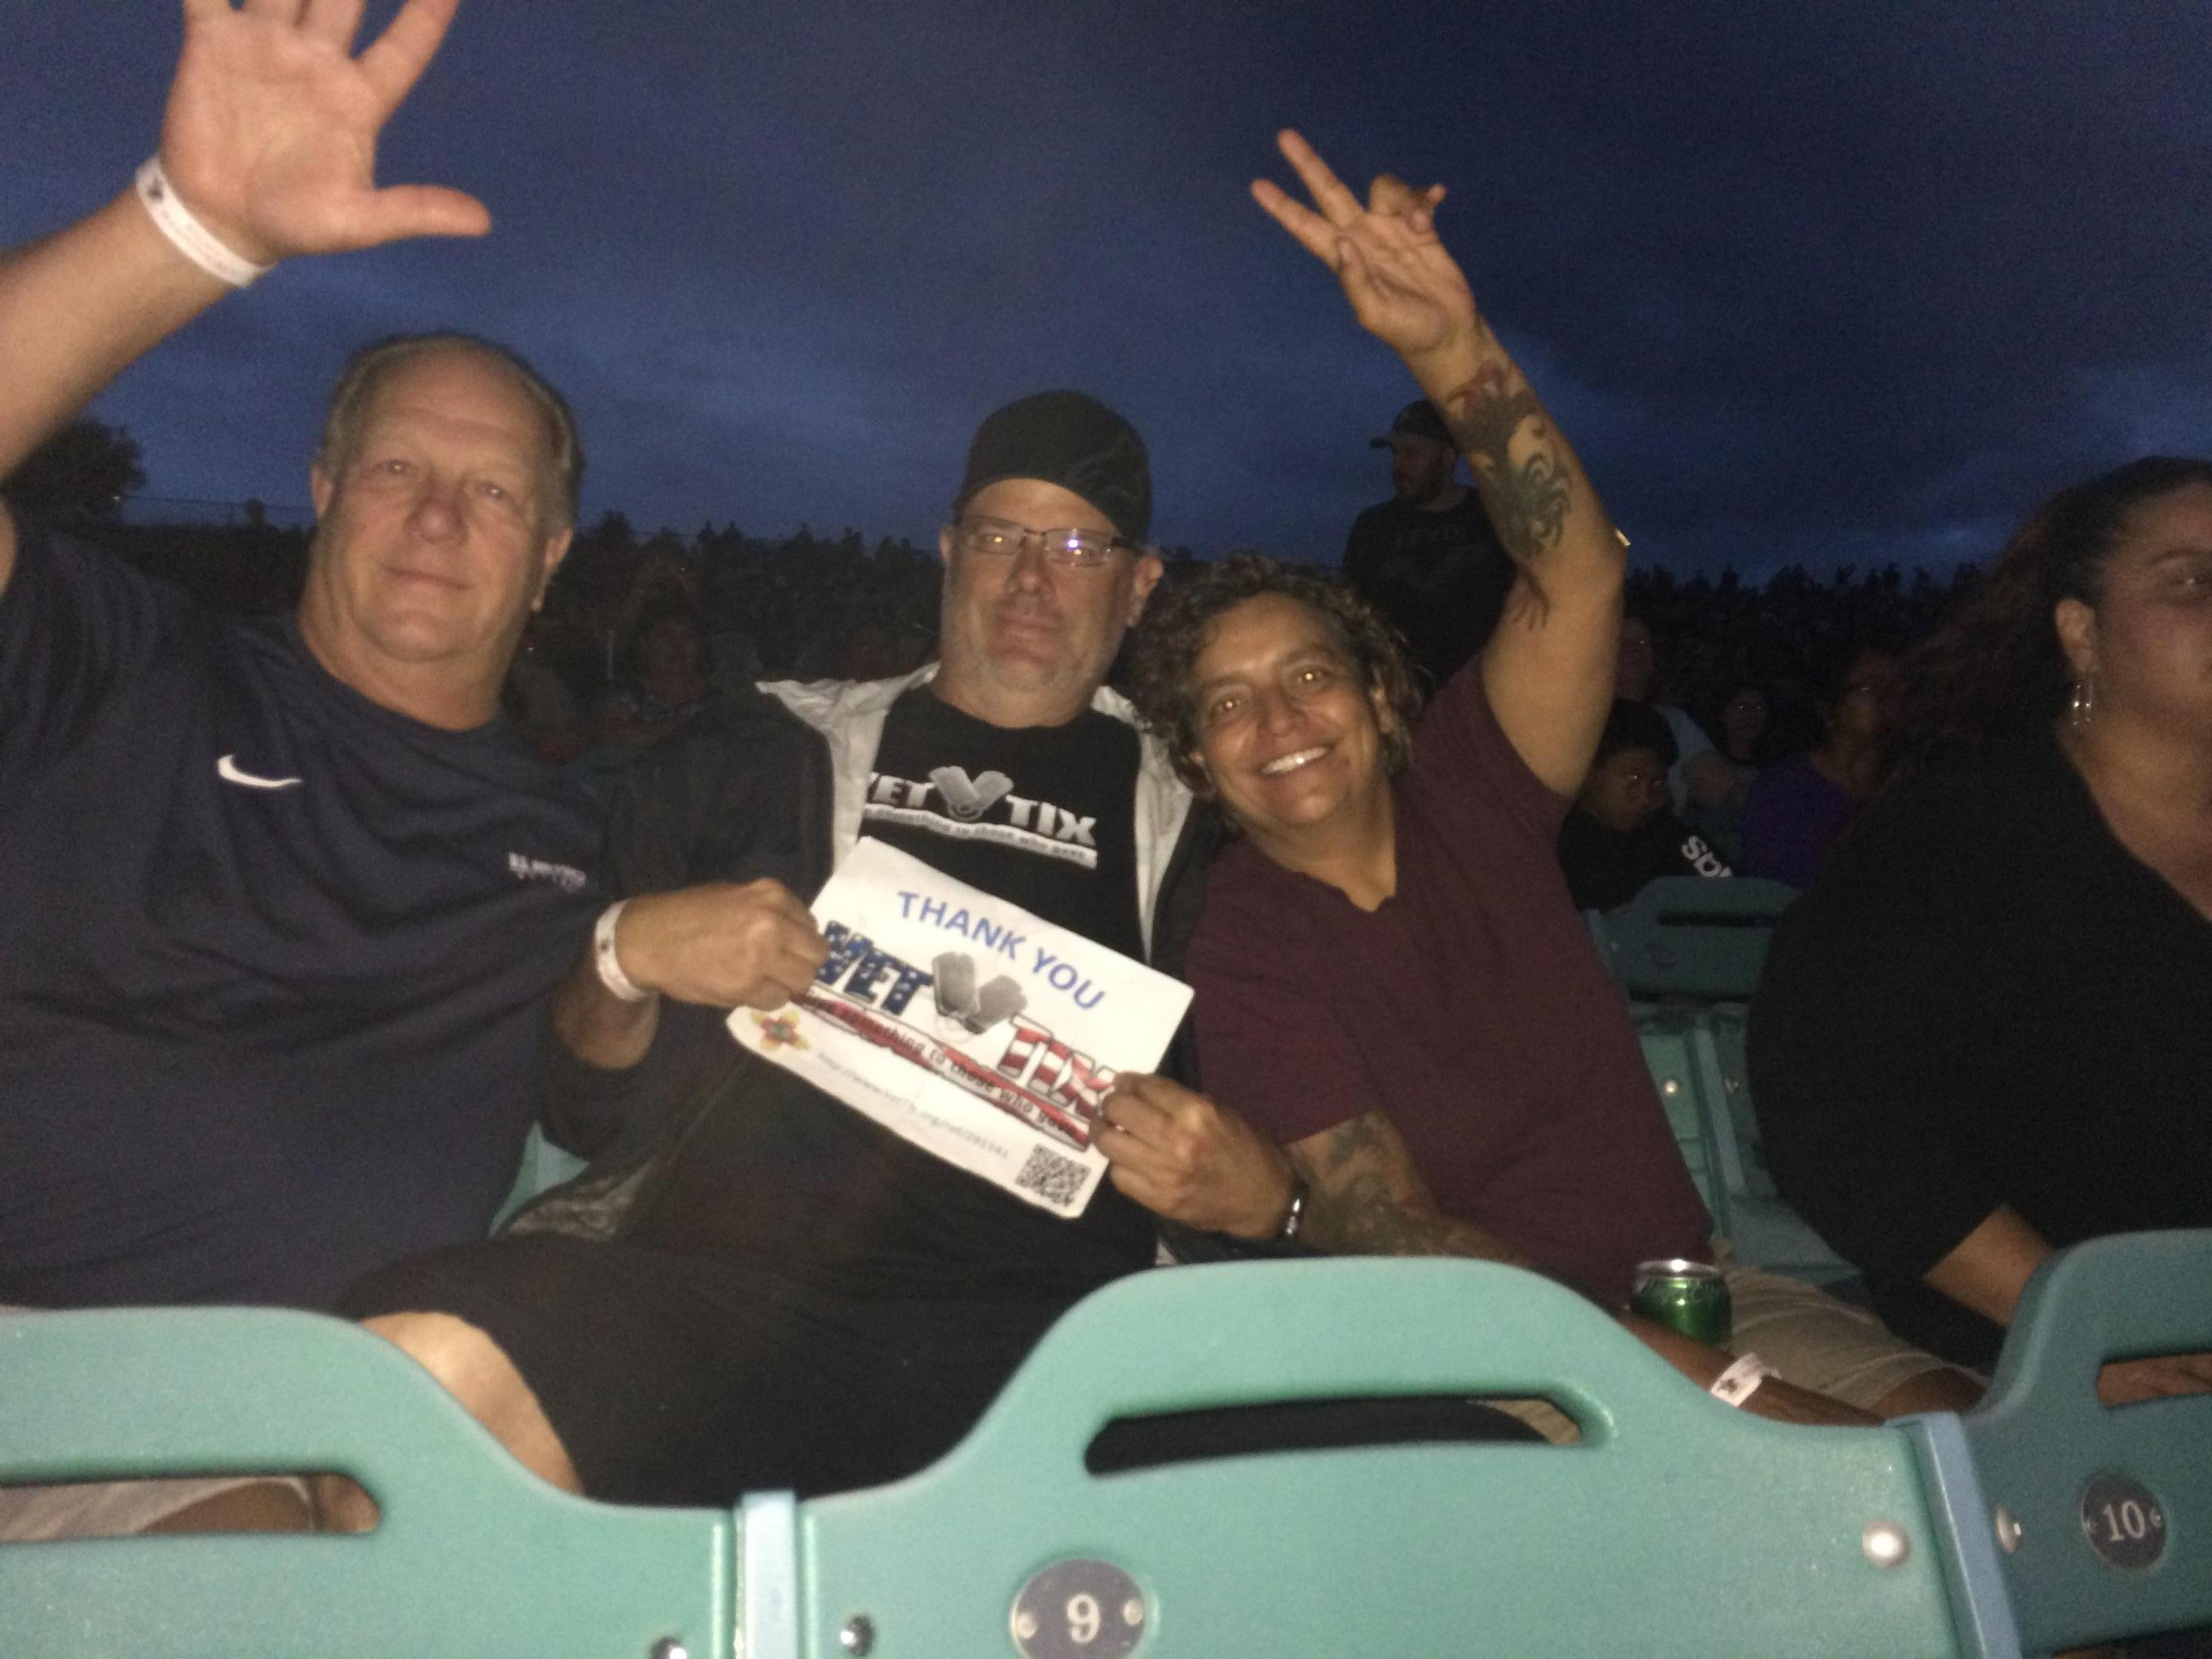 37b561ddd0ce Steven attended 40th Anniversary Tour - Foreigner With Cheap Trick and  Jason Bonham s Led Zeppelin Experience